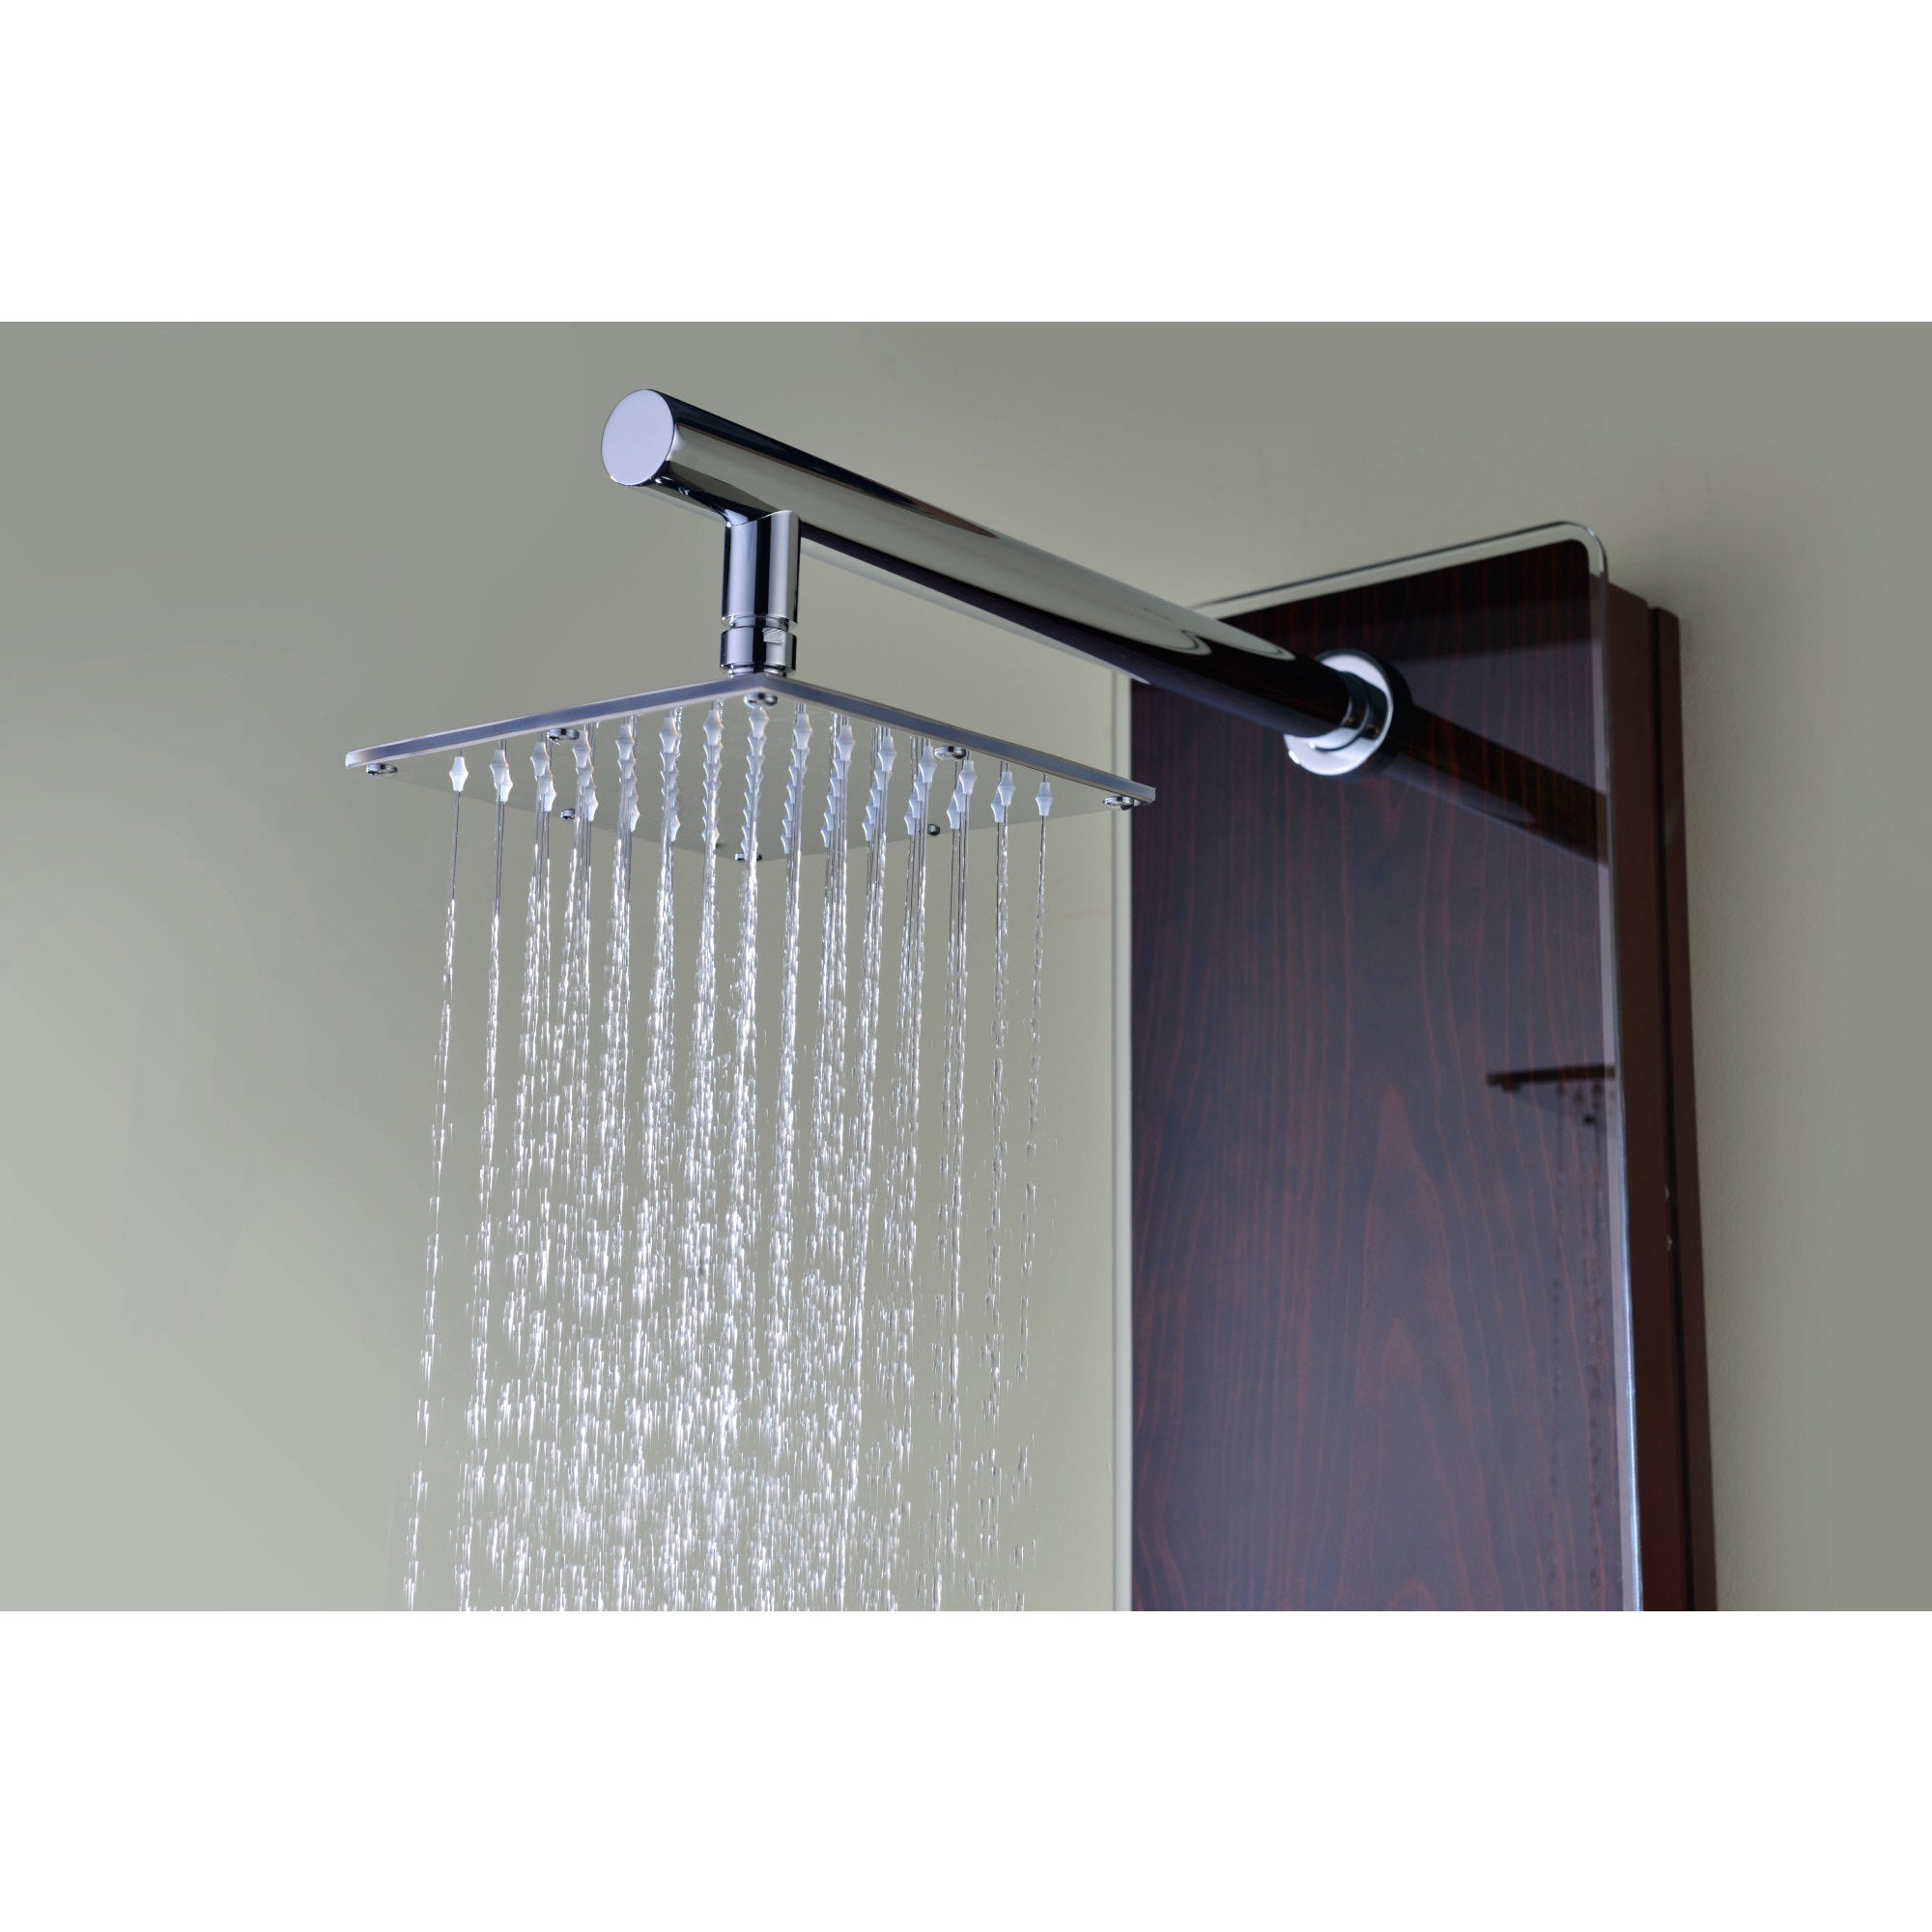 ANZZI Pure 3-jetted Full Body Shower Panel System in Mahogany Style ...